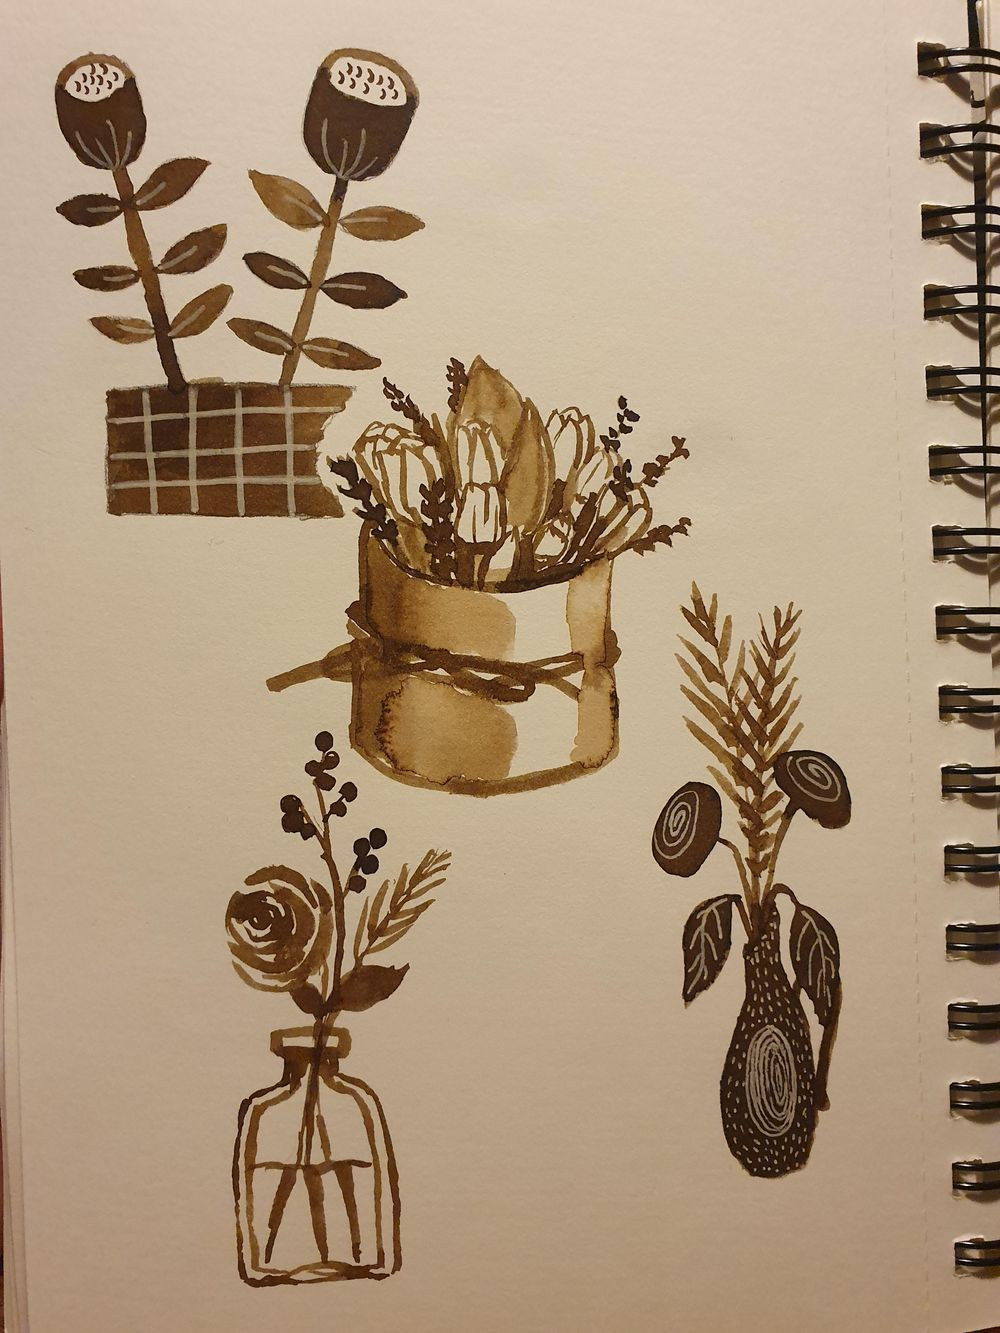 Sepia ink flowers - image 2 - student project